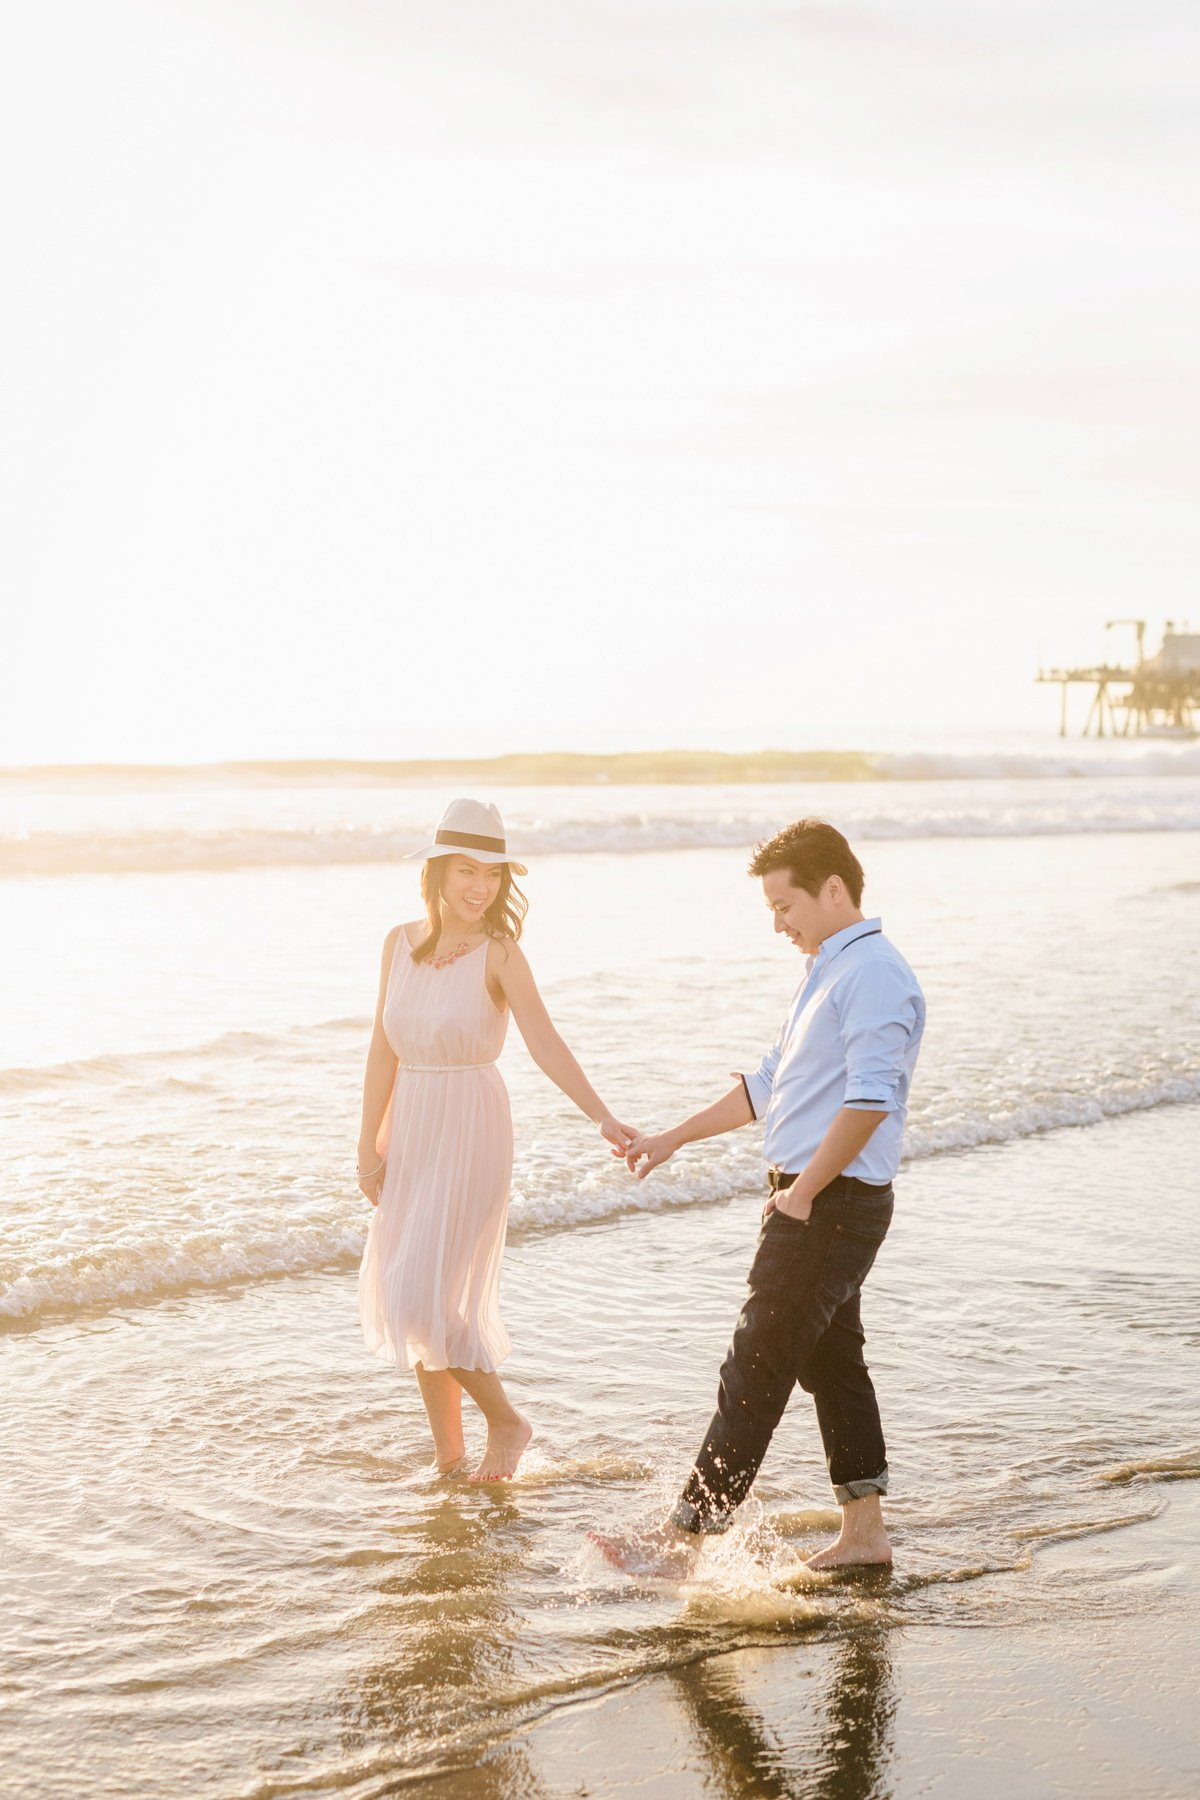 Best California Engagement Photographer-Jodee Debes Photography-140